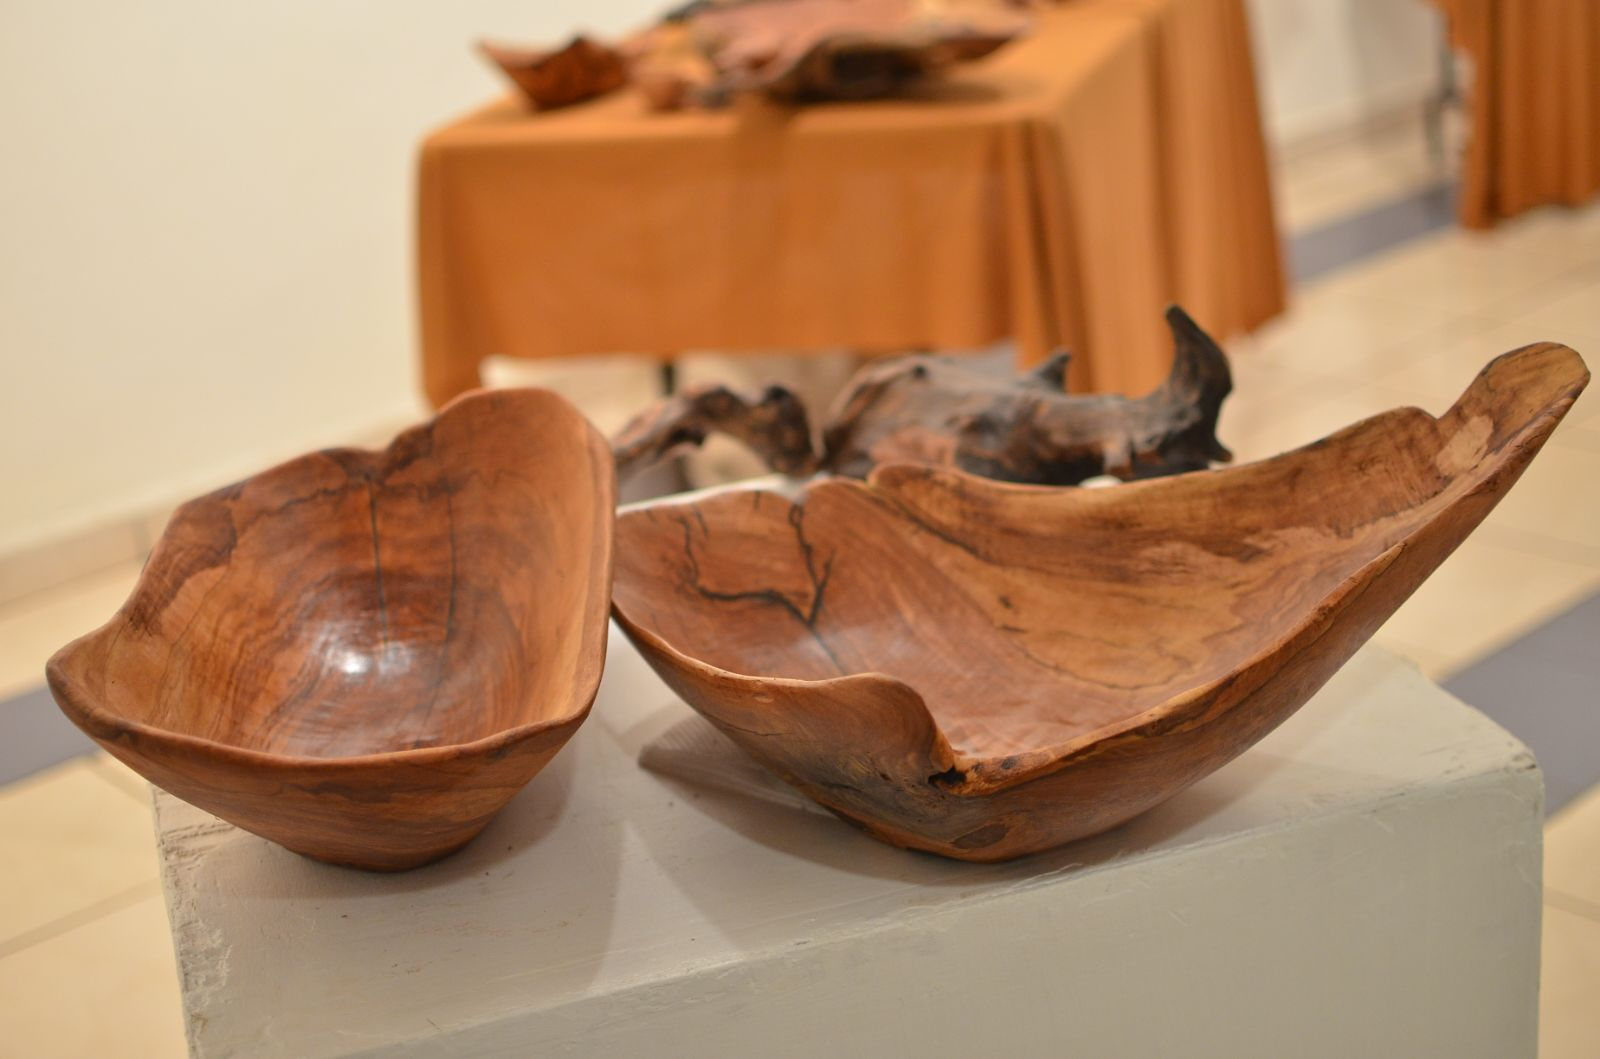 The bowls are carved out of sustainably harvested indigenous trees The bowl is 12 inches in length and 8 inches in diameter I can make to your specification